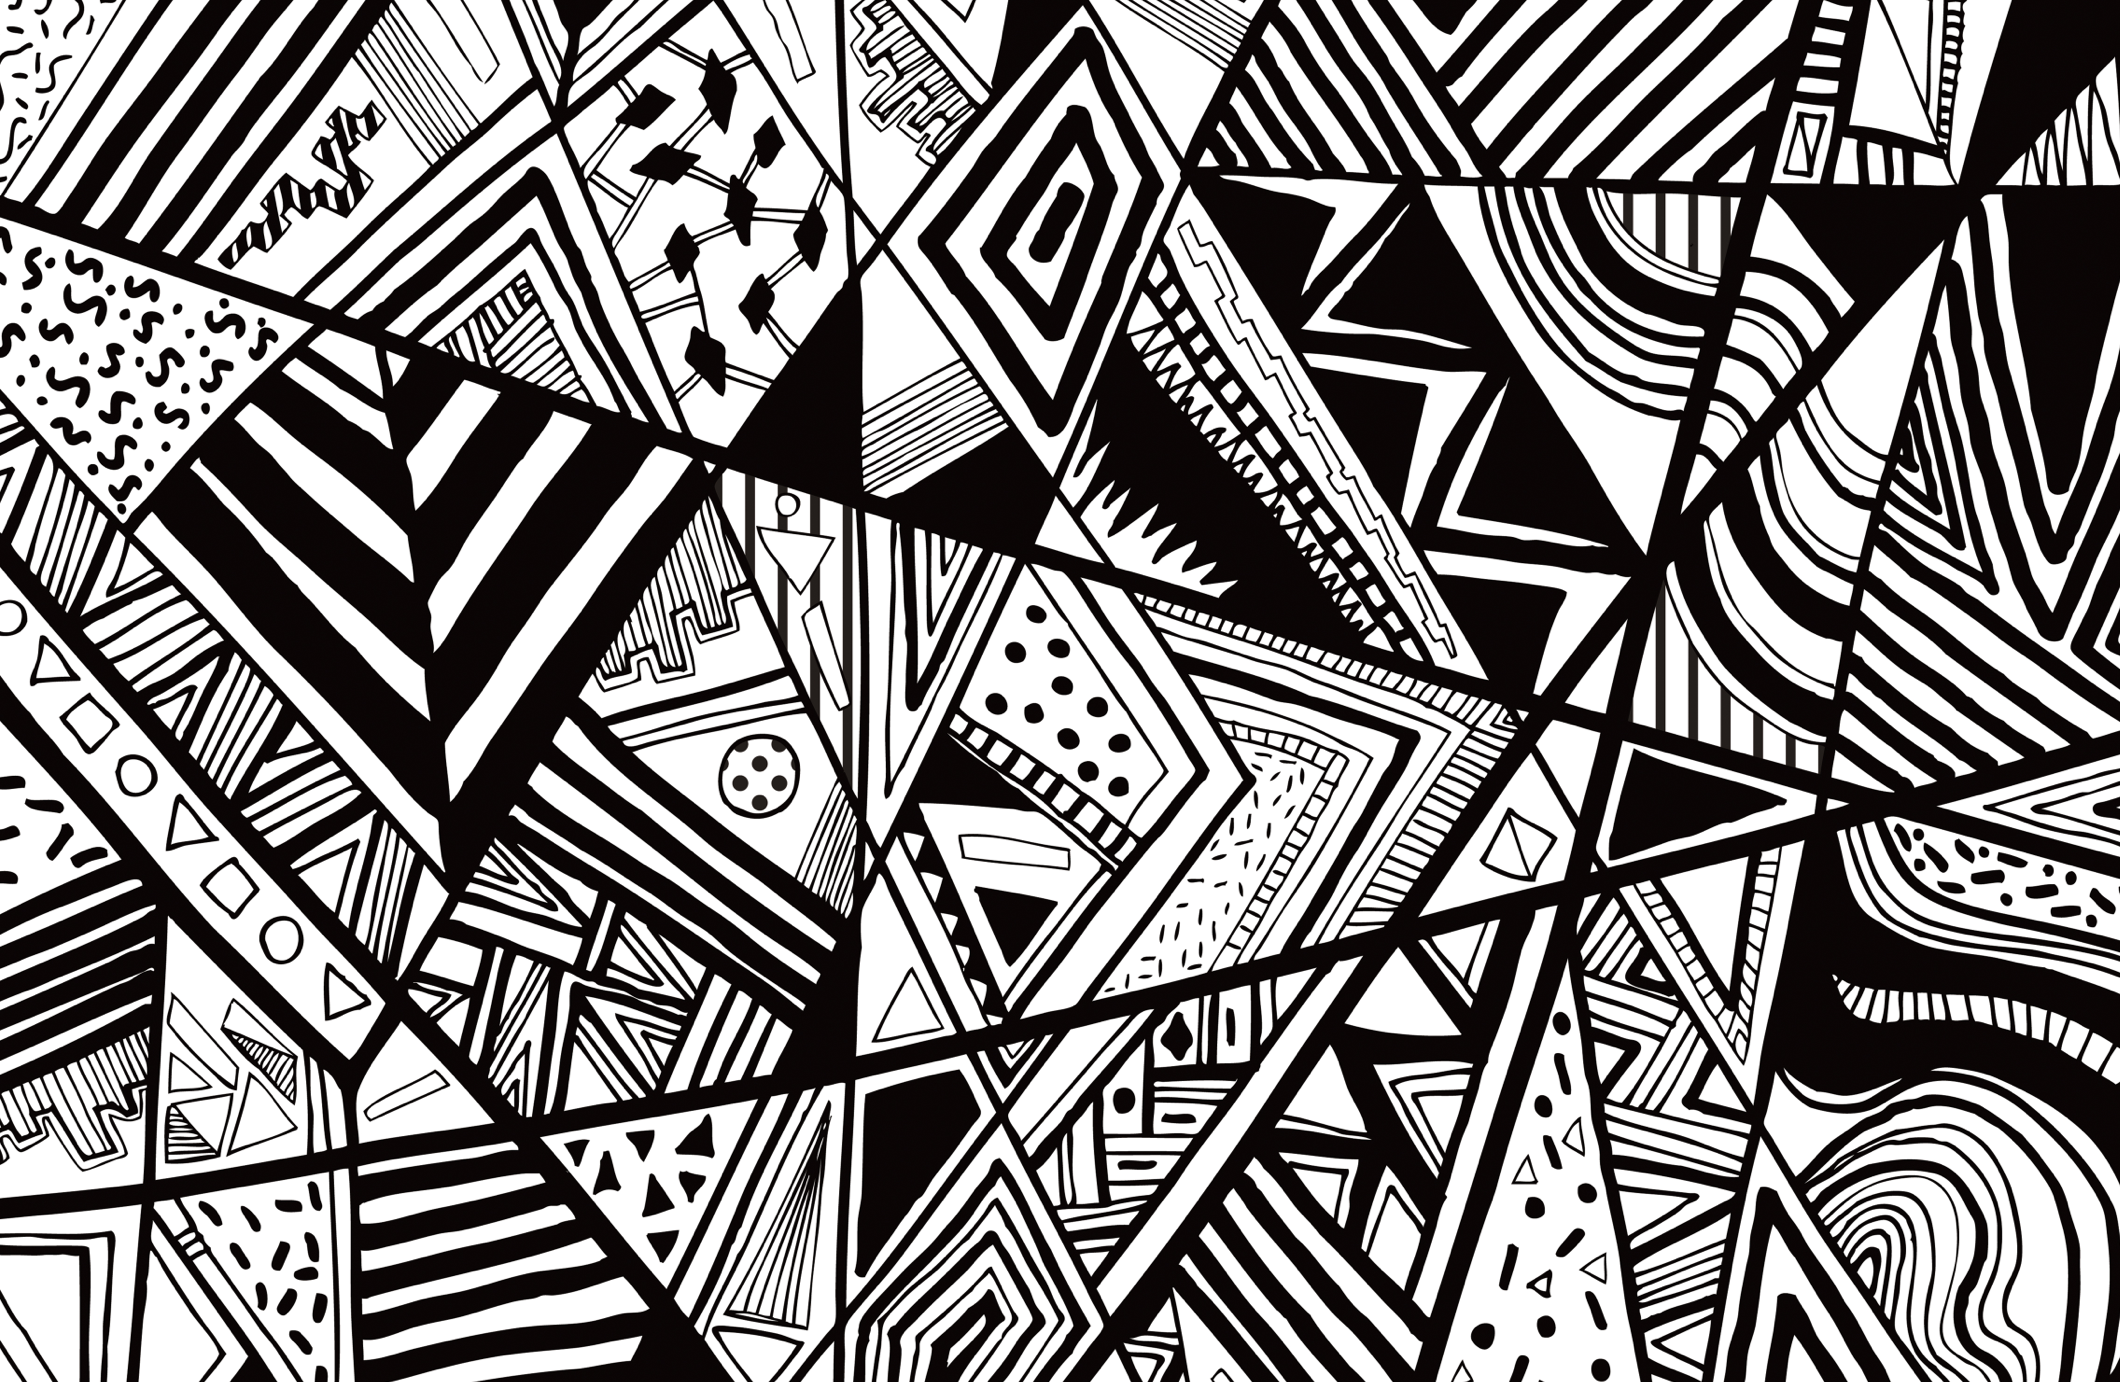 Line Work Art : Black white abstract pattern vector line drawing graphic